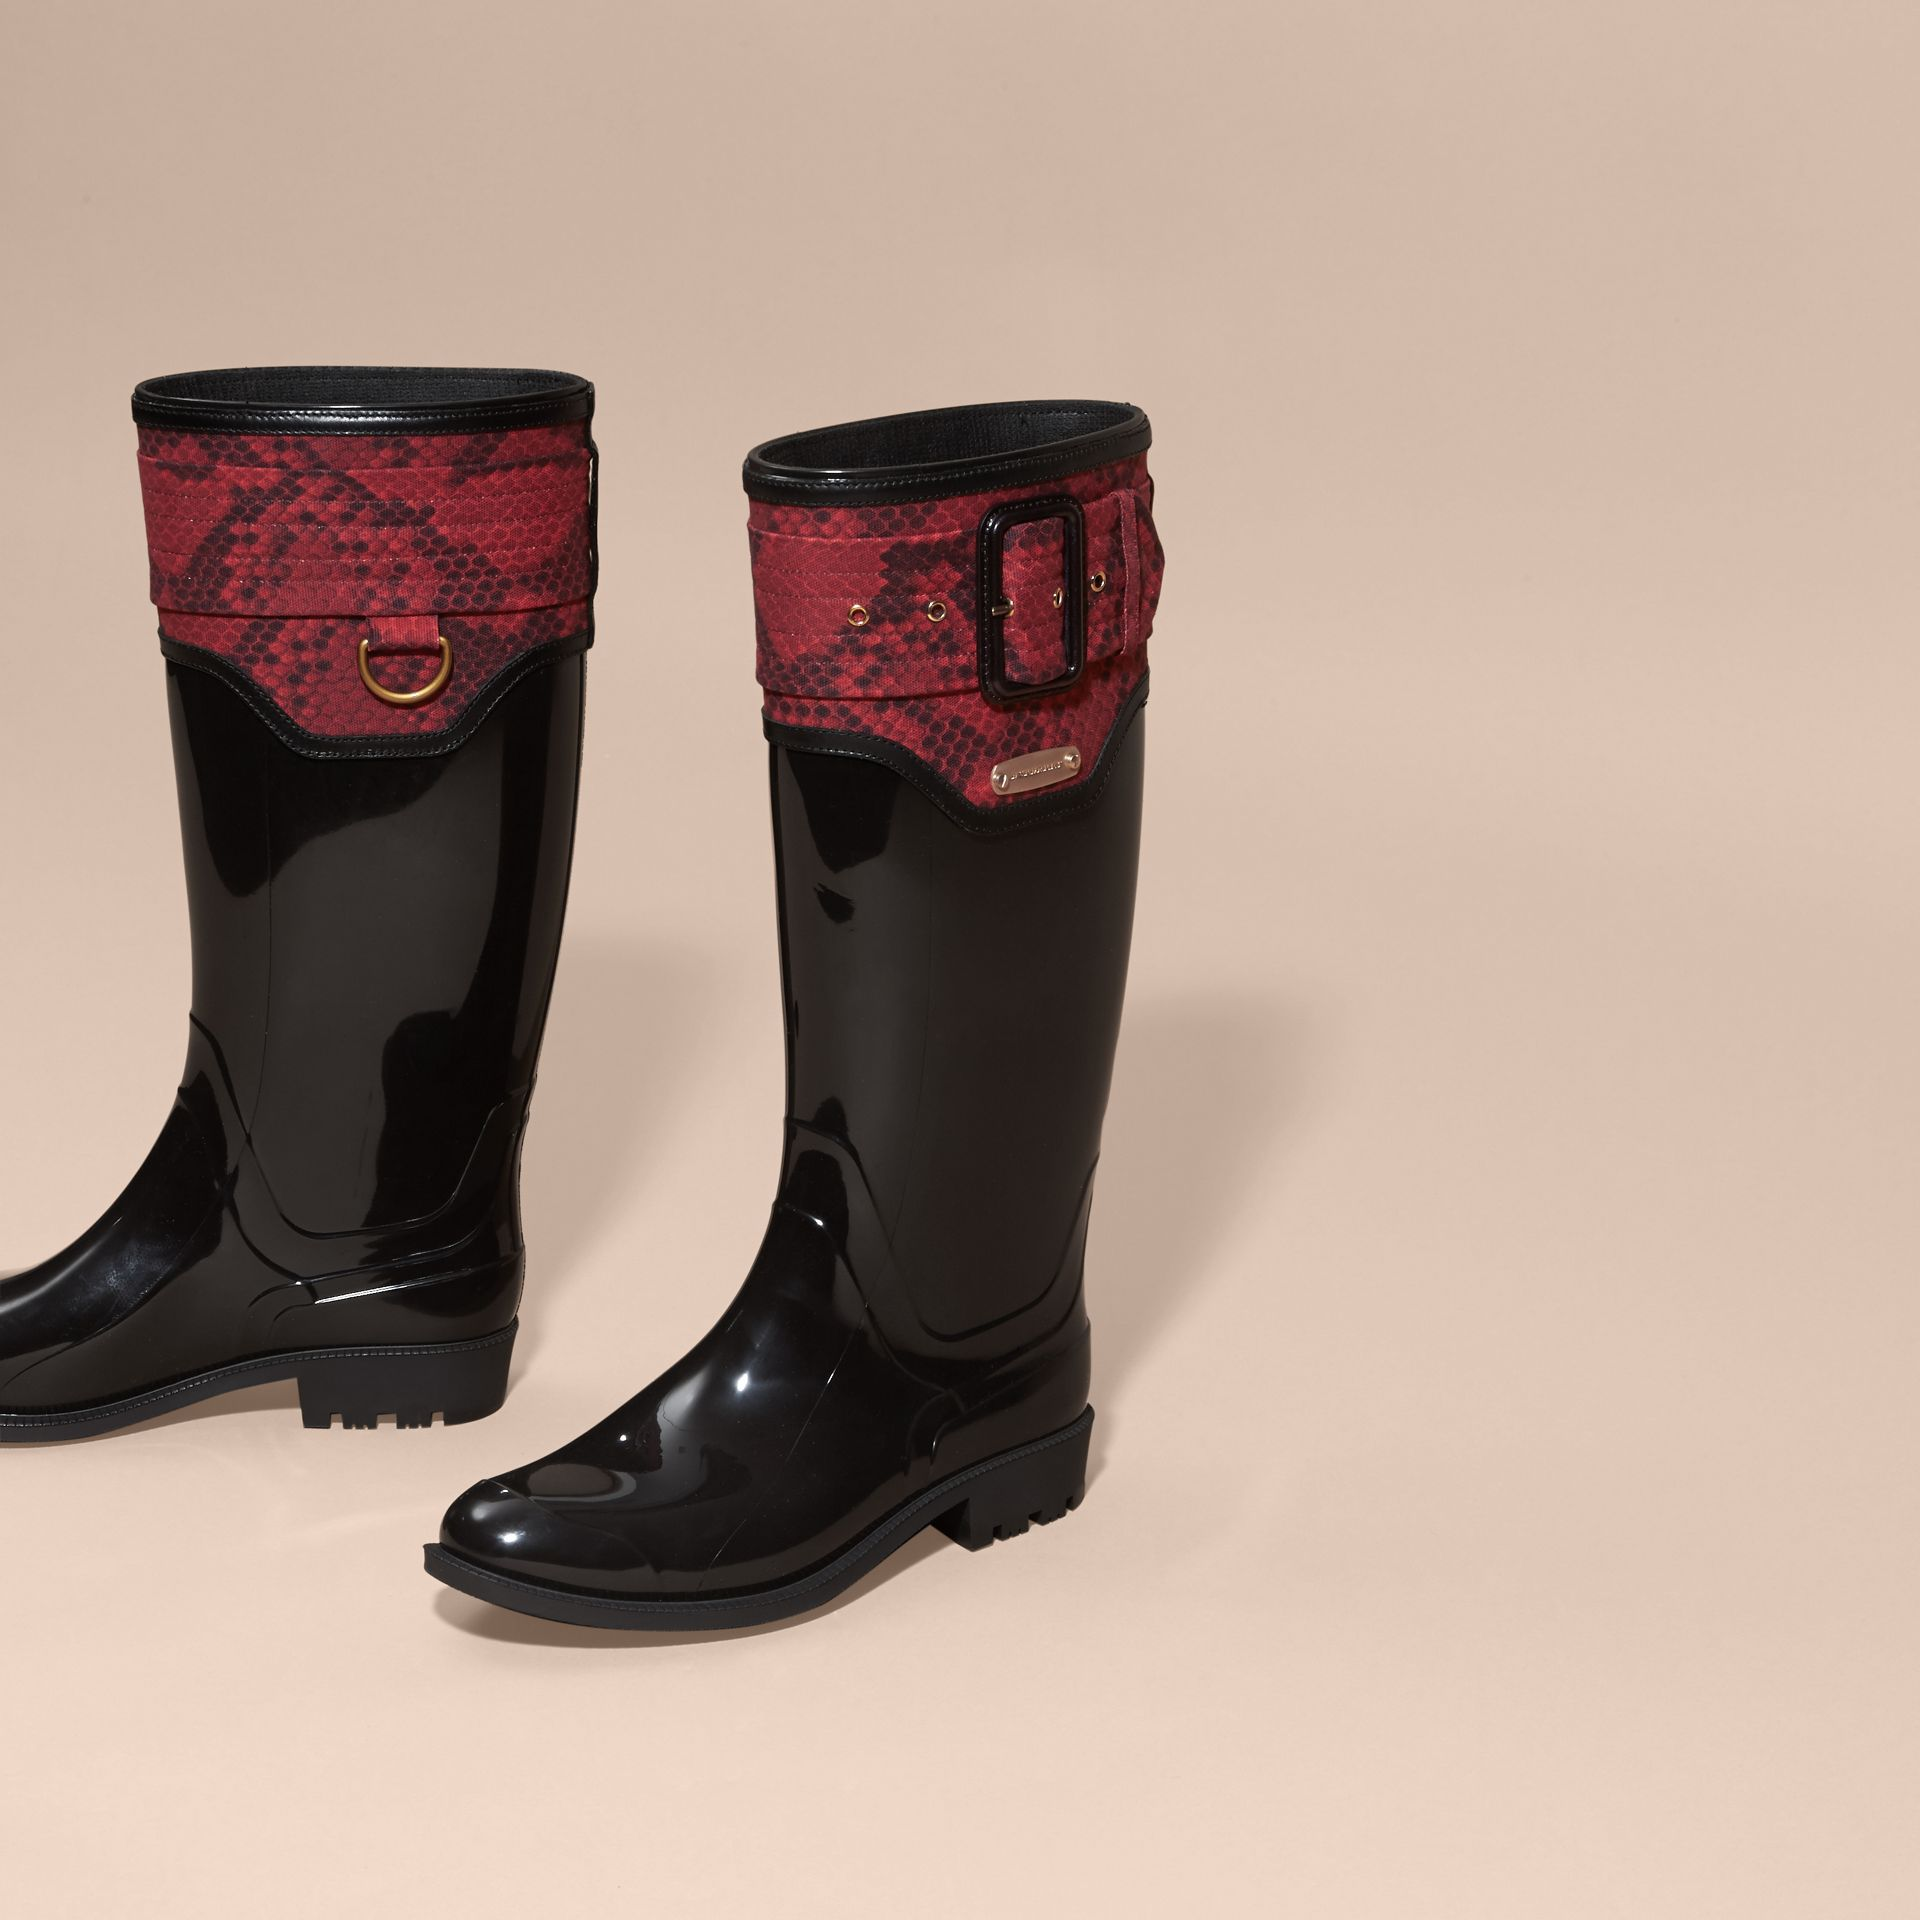 Black/windsor red Python Print Detail Rain Boots - gallery image 2